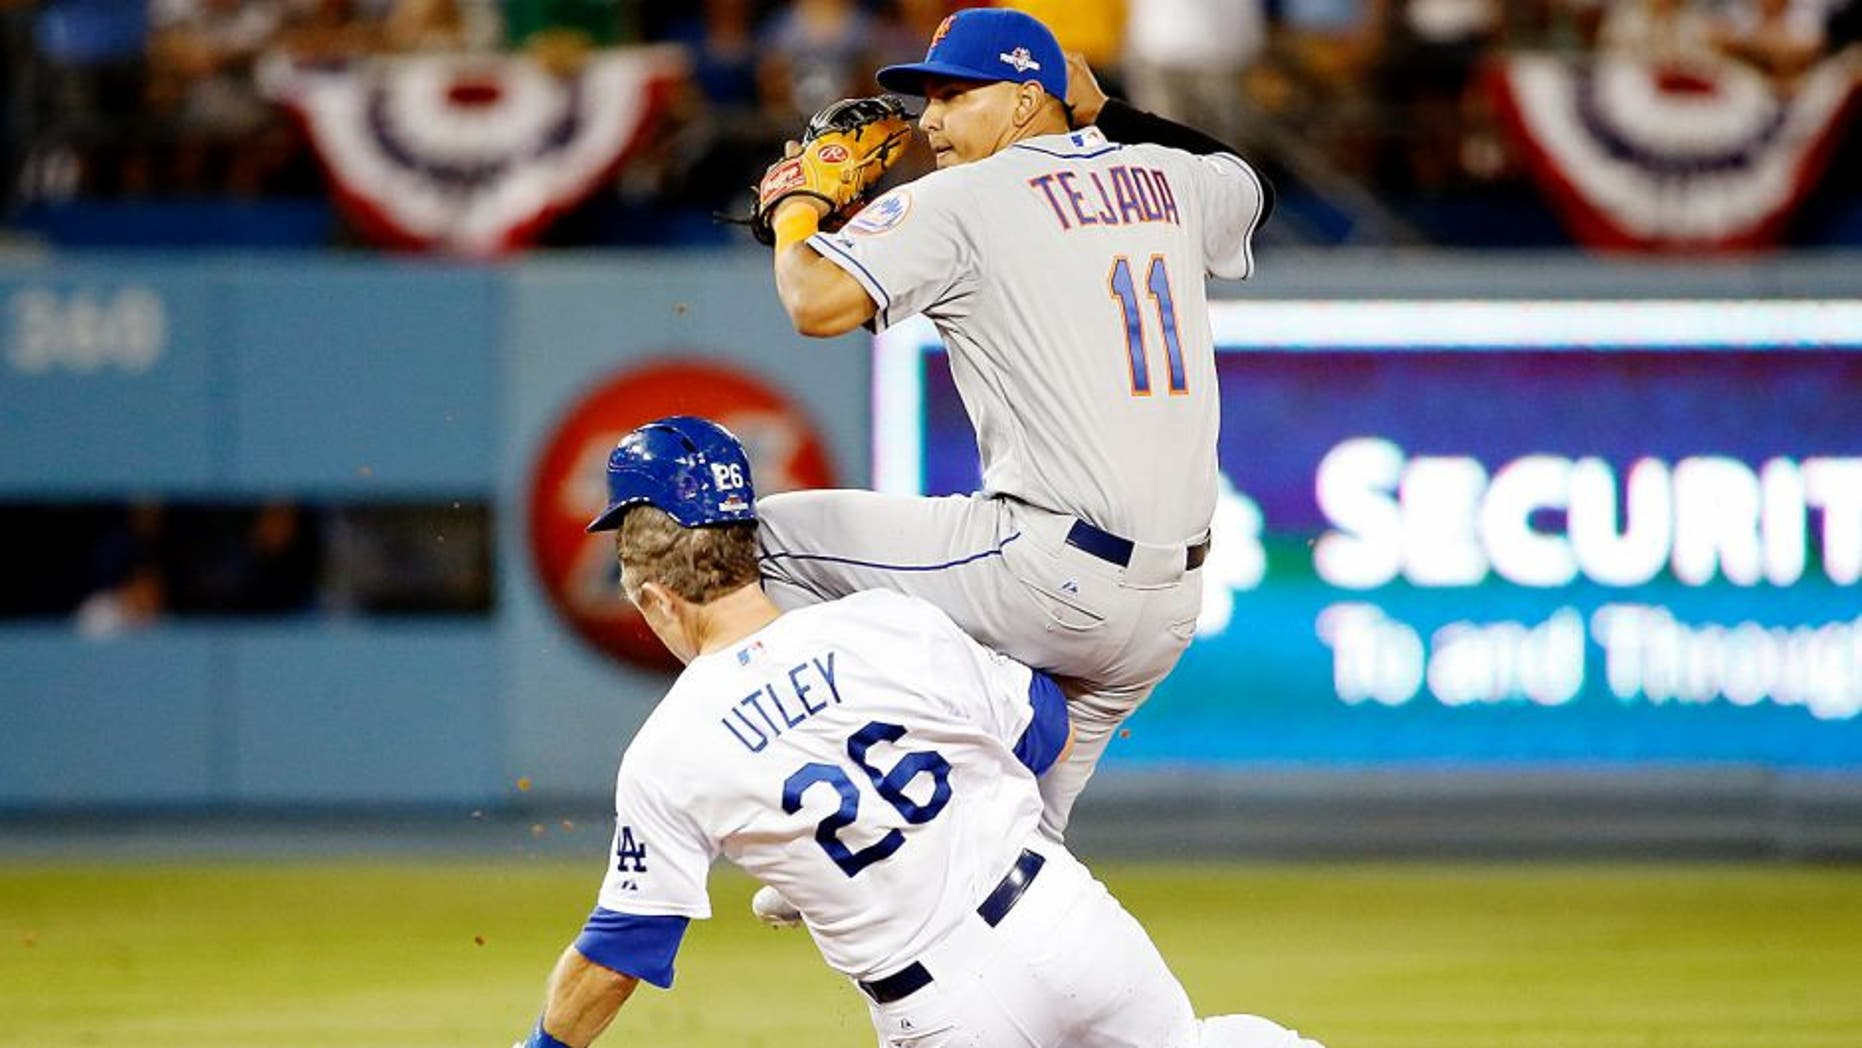 LOS ANGELES, CA - OCTOBER 10: Ruben Tejada #11 of the New York Mets is hit by a slide by Chase Utley #26 of the Los Angeles Dodgers in the seventh inning in an attempt to turn a double play in game two of the National League Division Series at Dodger Stadium on October 10, 2015 in Los Angeles, California. (Photo by Sean M. Haffey/Getty Images)